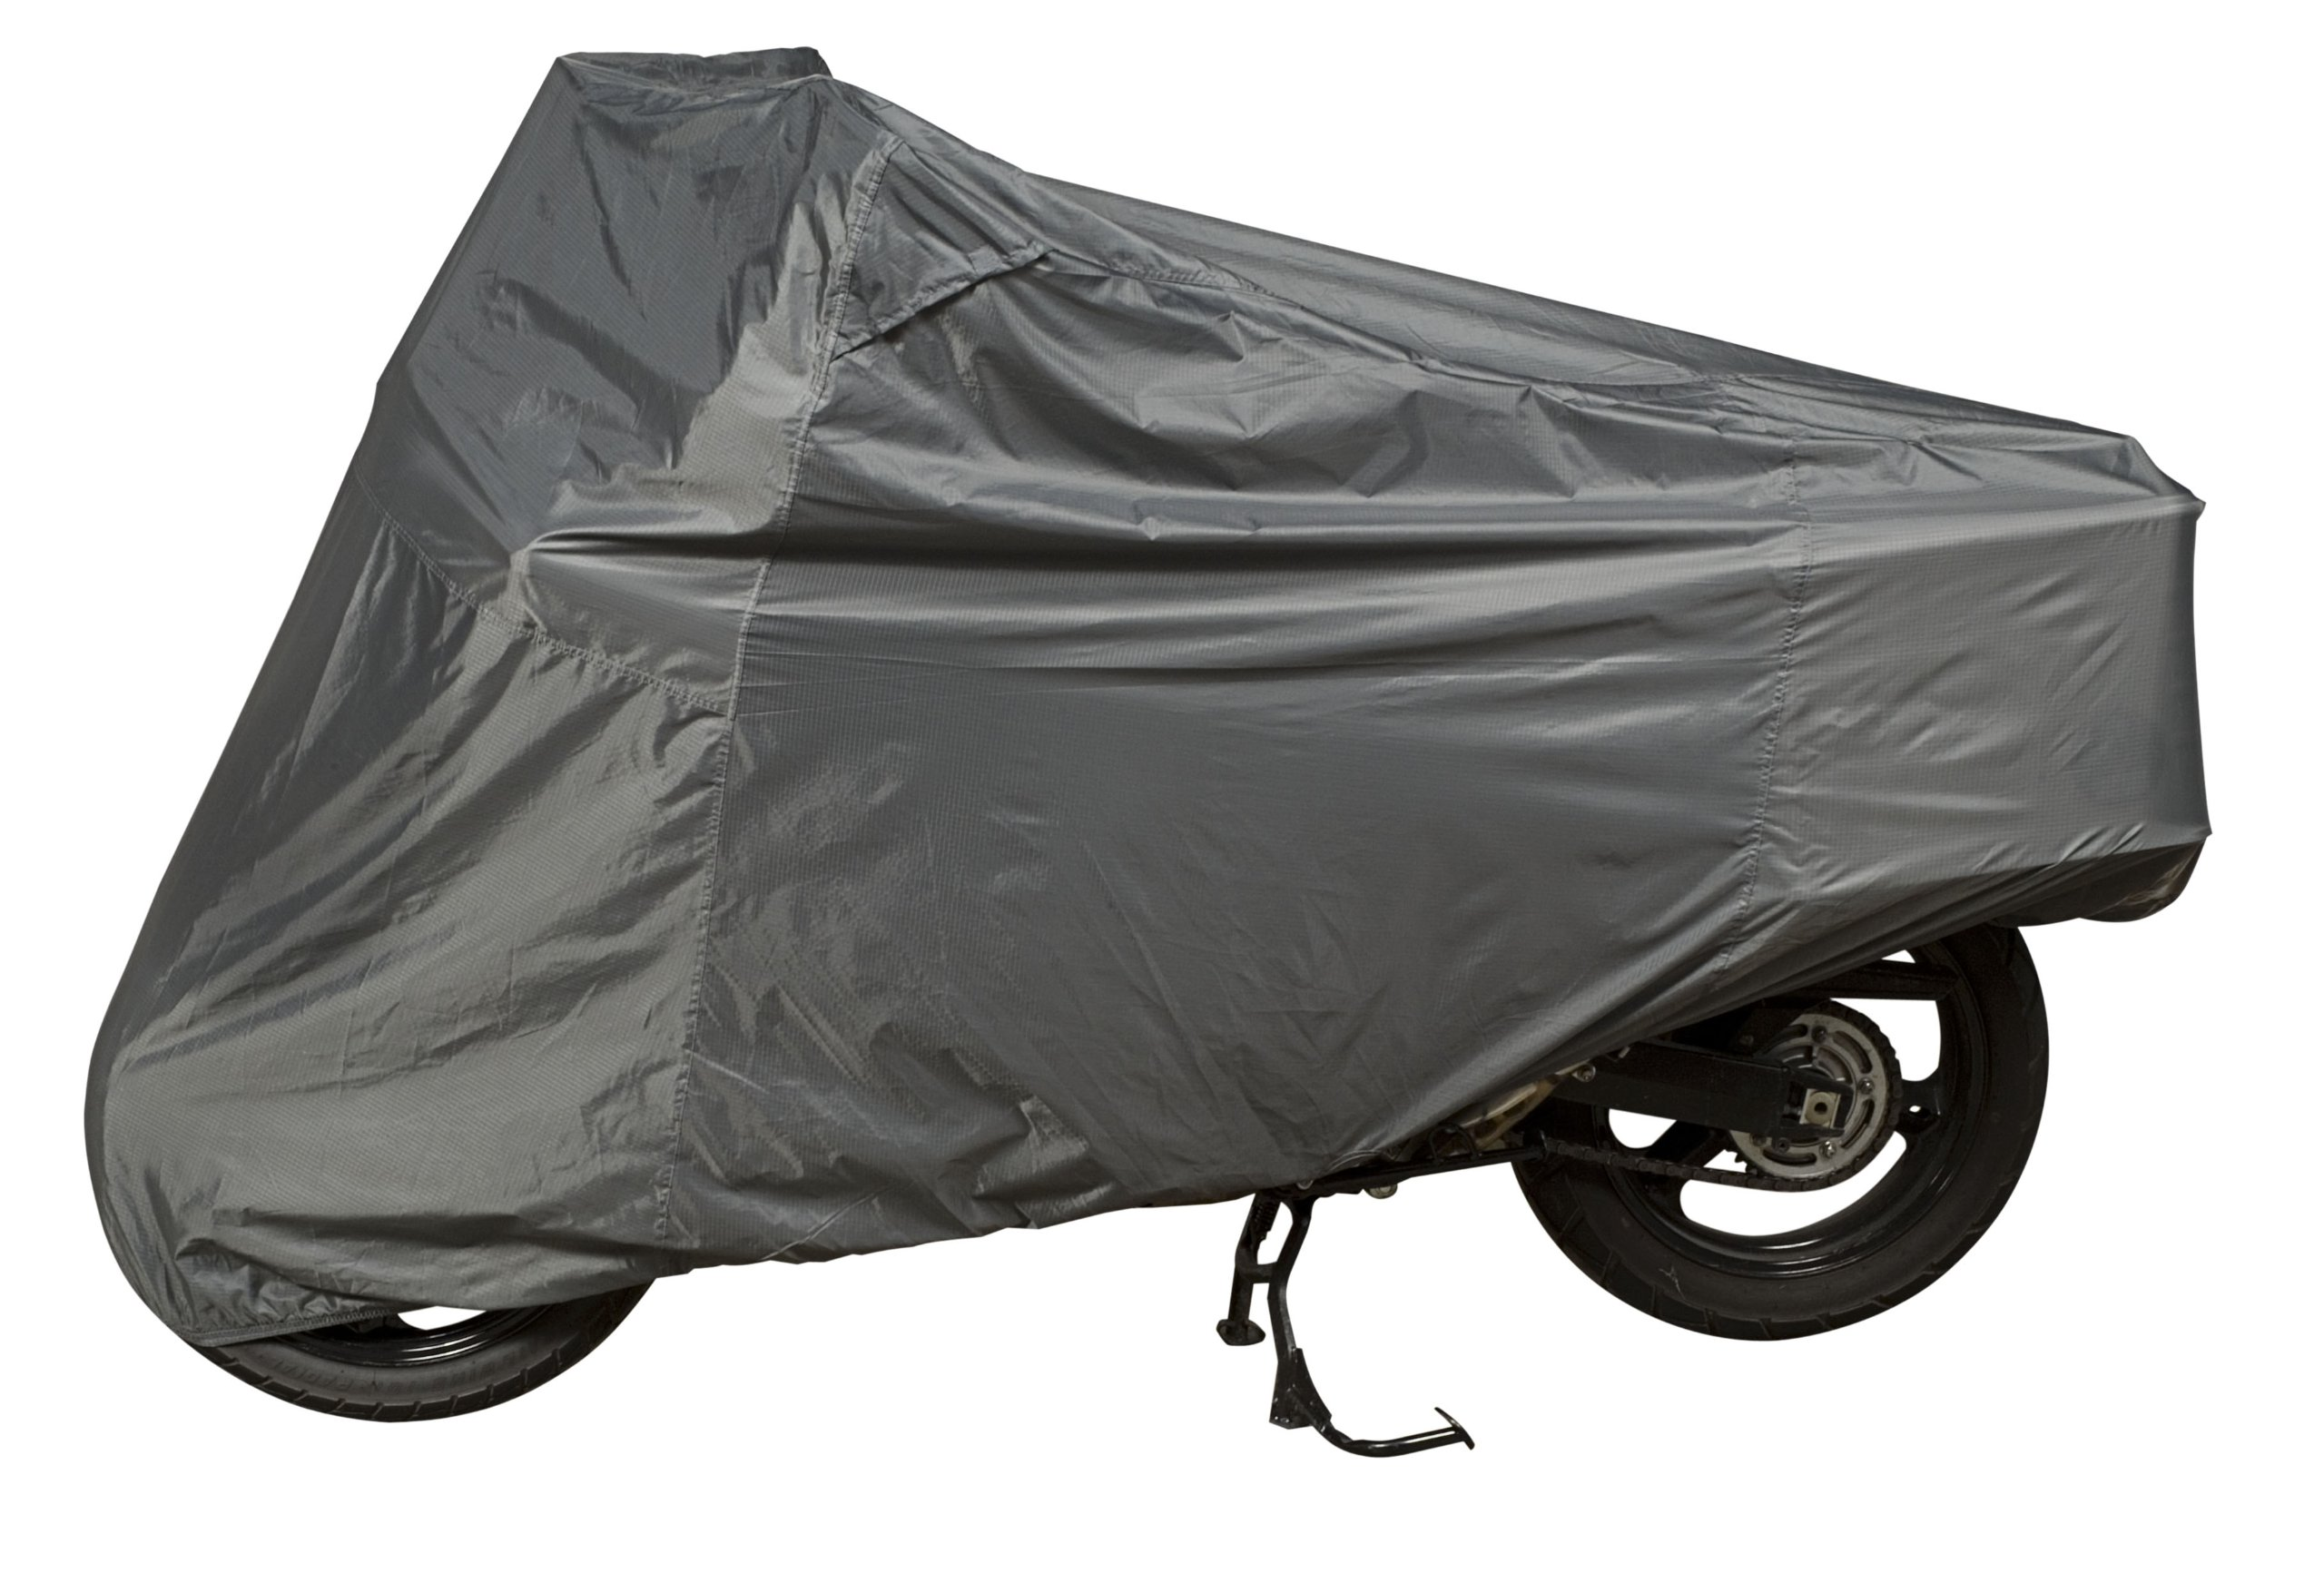 Dowco Guardian 26045-00 Ultralite Plus Water Resistant Indoor/Outdoor Motorcycle Cover: Grey, Adventure Touring